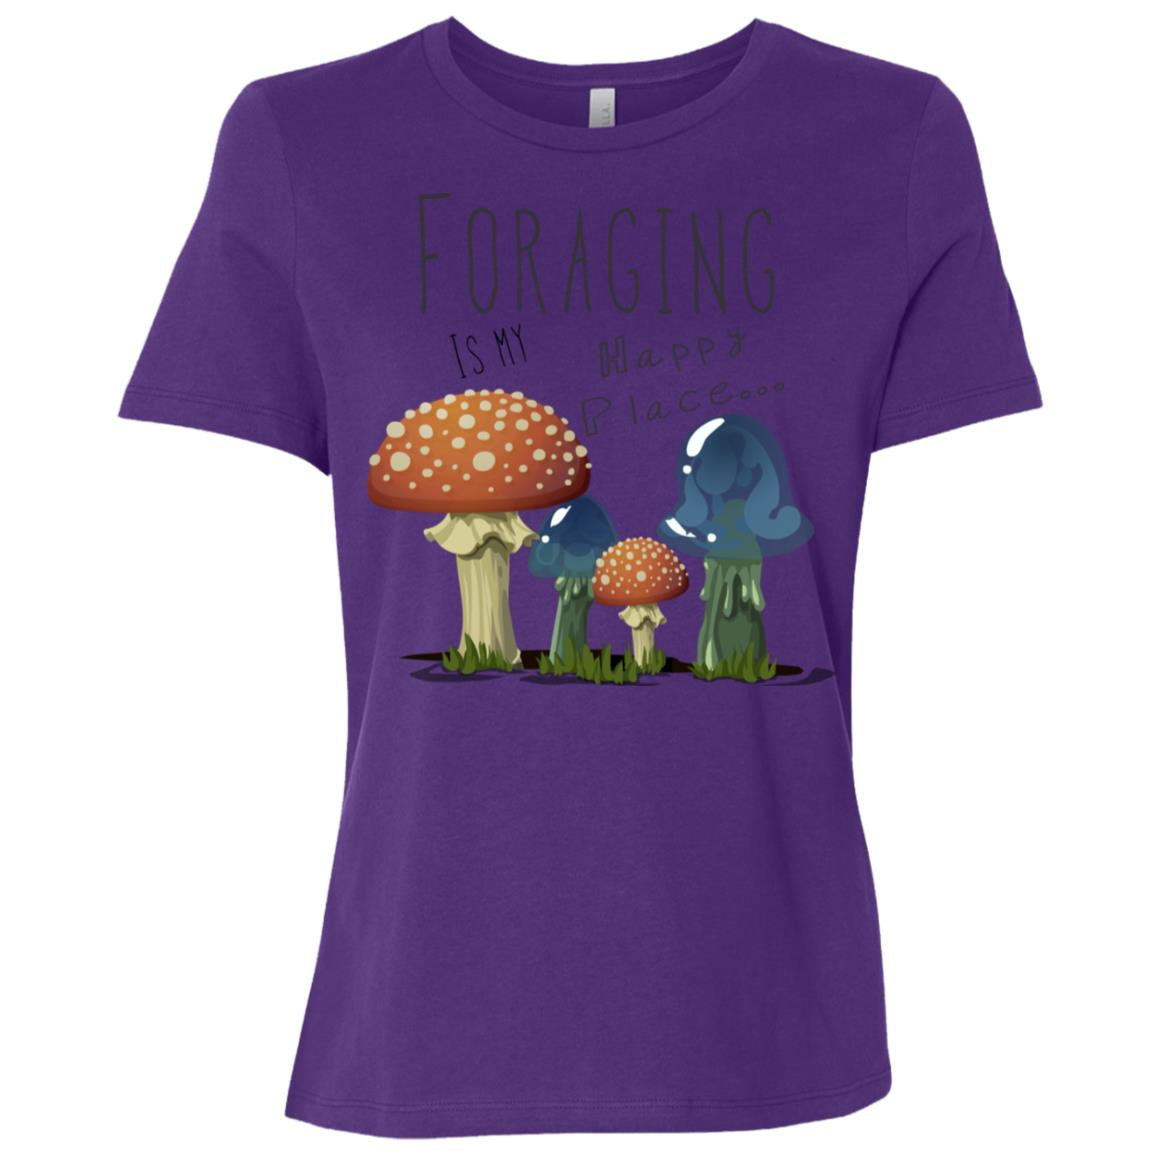 foraging designs mycology art foraging is my happy place Women Short Sleeve T-Shirt